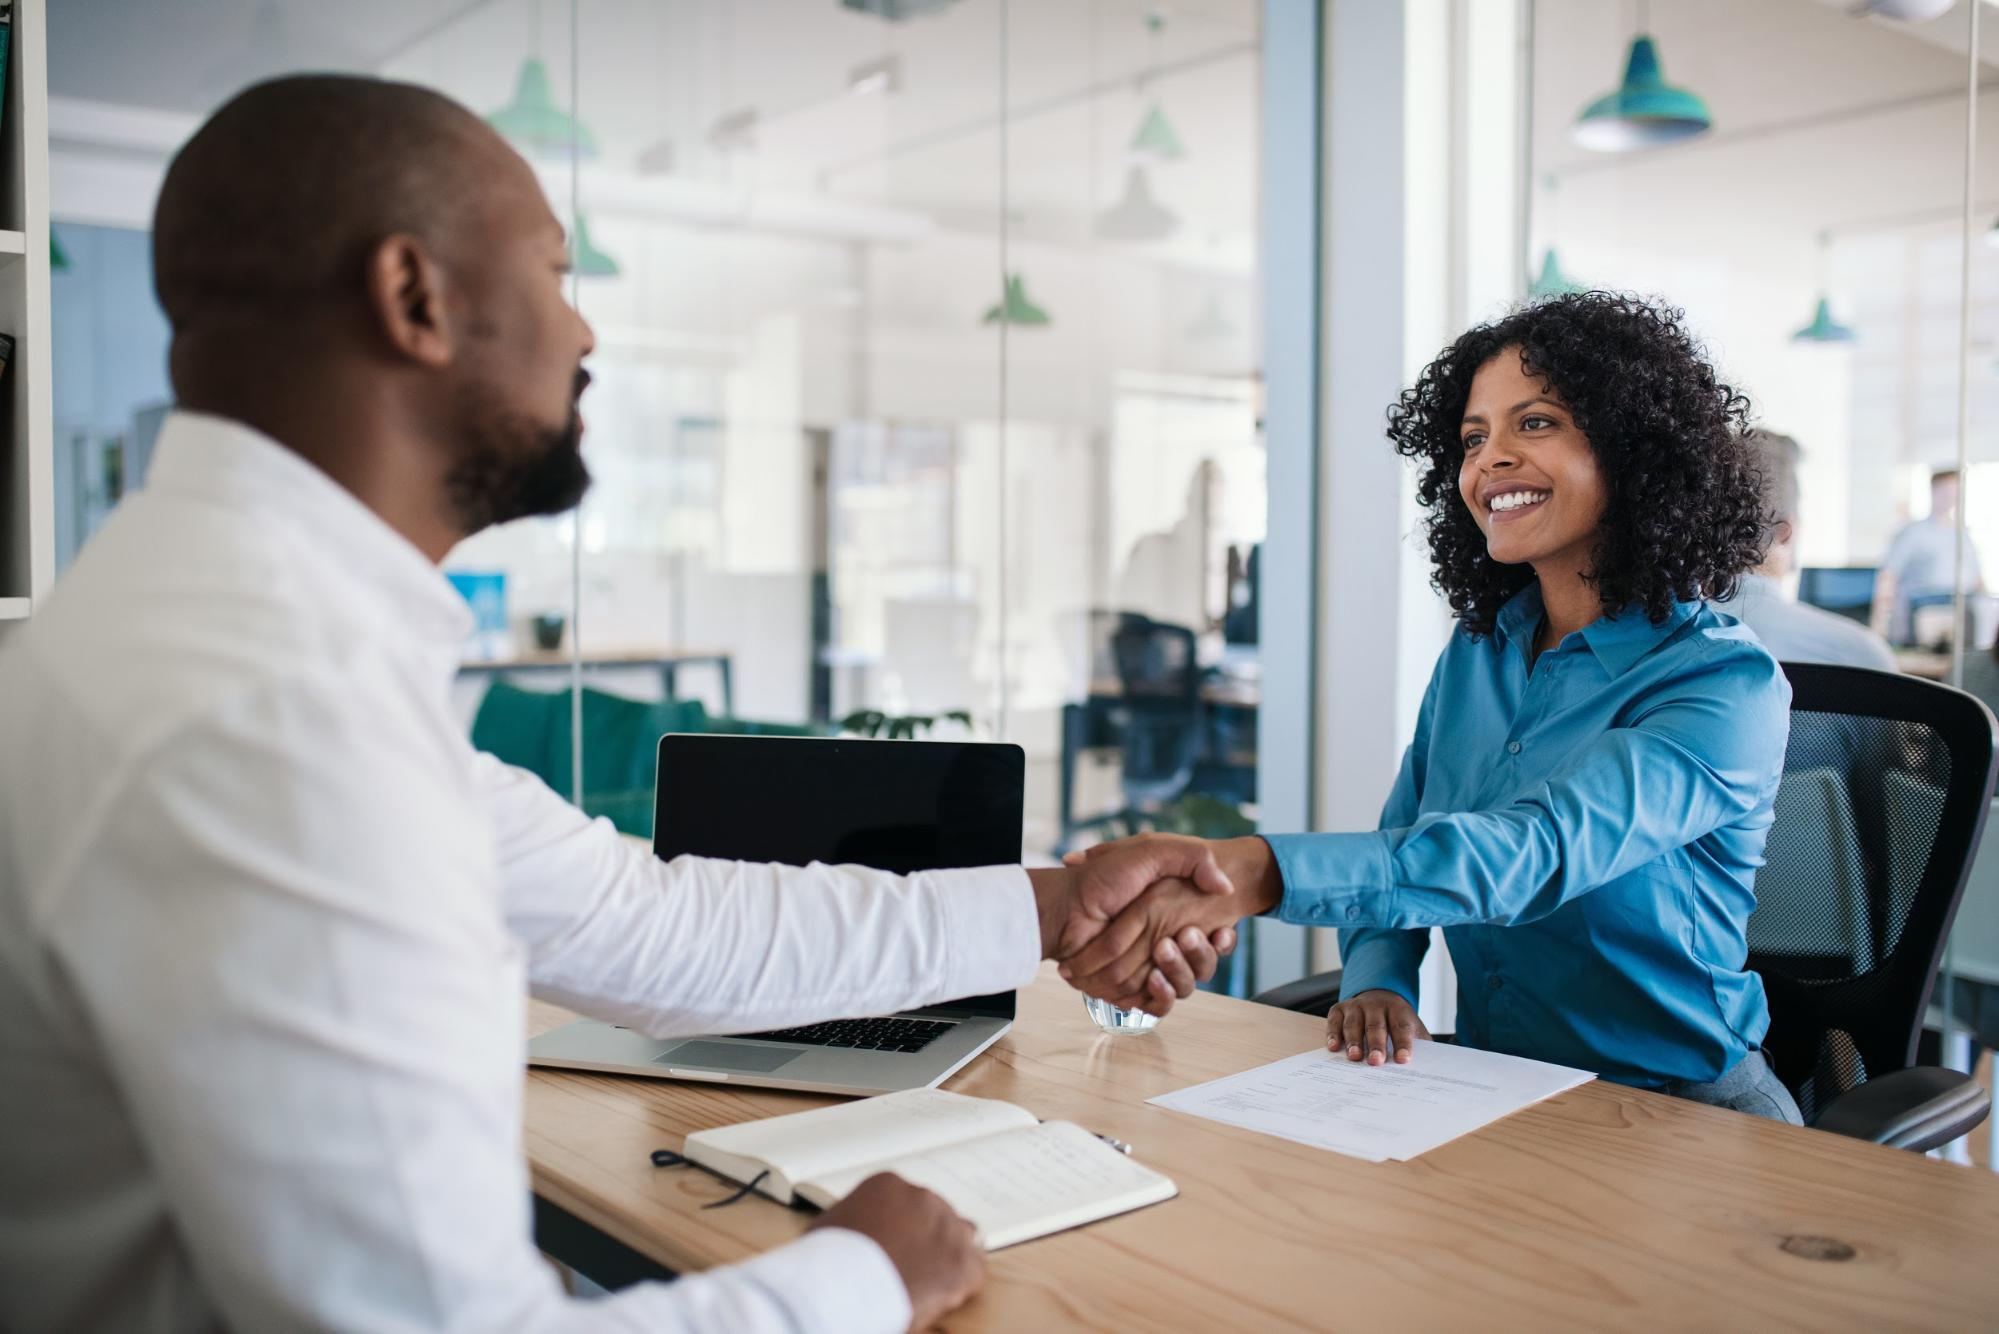 Man shaking hands with a female applicant